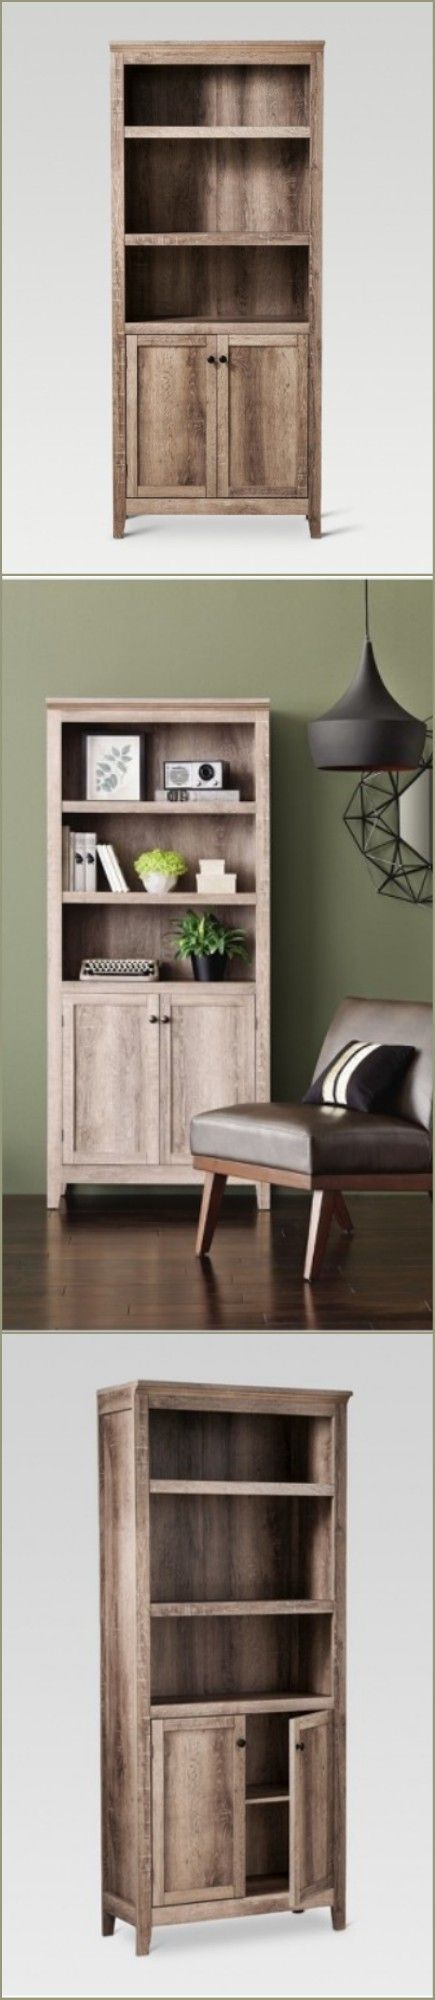 rustic look furniture. I\u0027m In Love With Rustic-looking Furniture. A Country Girl, So Rustic Decor Always Catches My Eye. I Would To Replace Shelf We Have Ou\u2026 Look Furniture